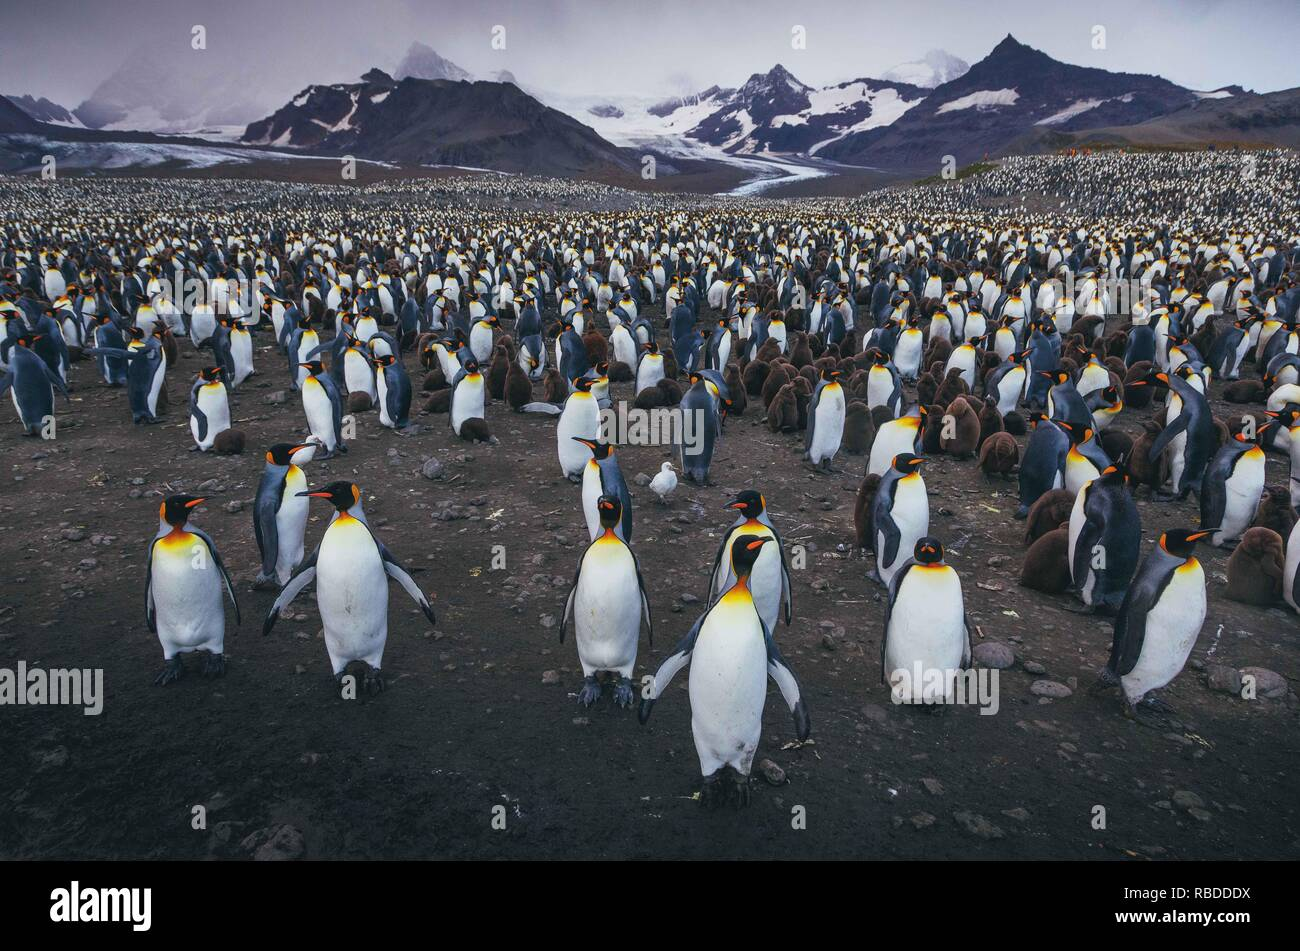 INCREDIBLE images have captured a 'sea' of penguins with hundreds of the birds as far as the eye can see. The stunning shots show the penguins gathering on the beach with their young as the mountains rise high into the sky behind them. Other striking pictures show the sun setting as the penguins waddle across the beach and the proud animals sticking their beaks into the air. The remarkable scene was captured in South Georgia in the Sub Antarctic Islands of Antarctica by polar photographer David Merron (42), from Toronto, Canada. Mediadrumimages / David Merron Stock Photo